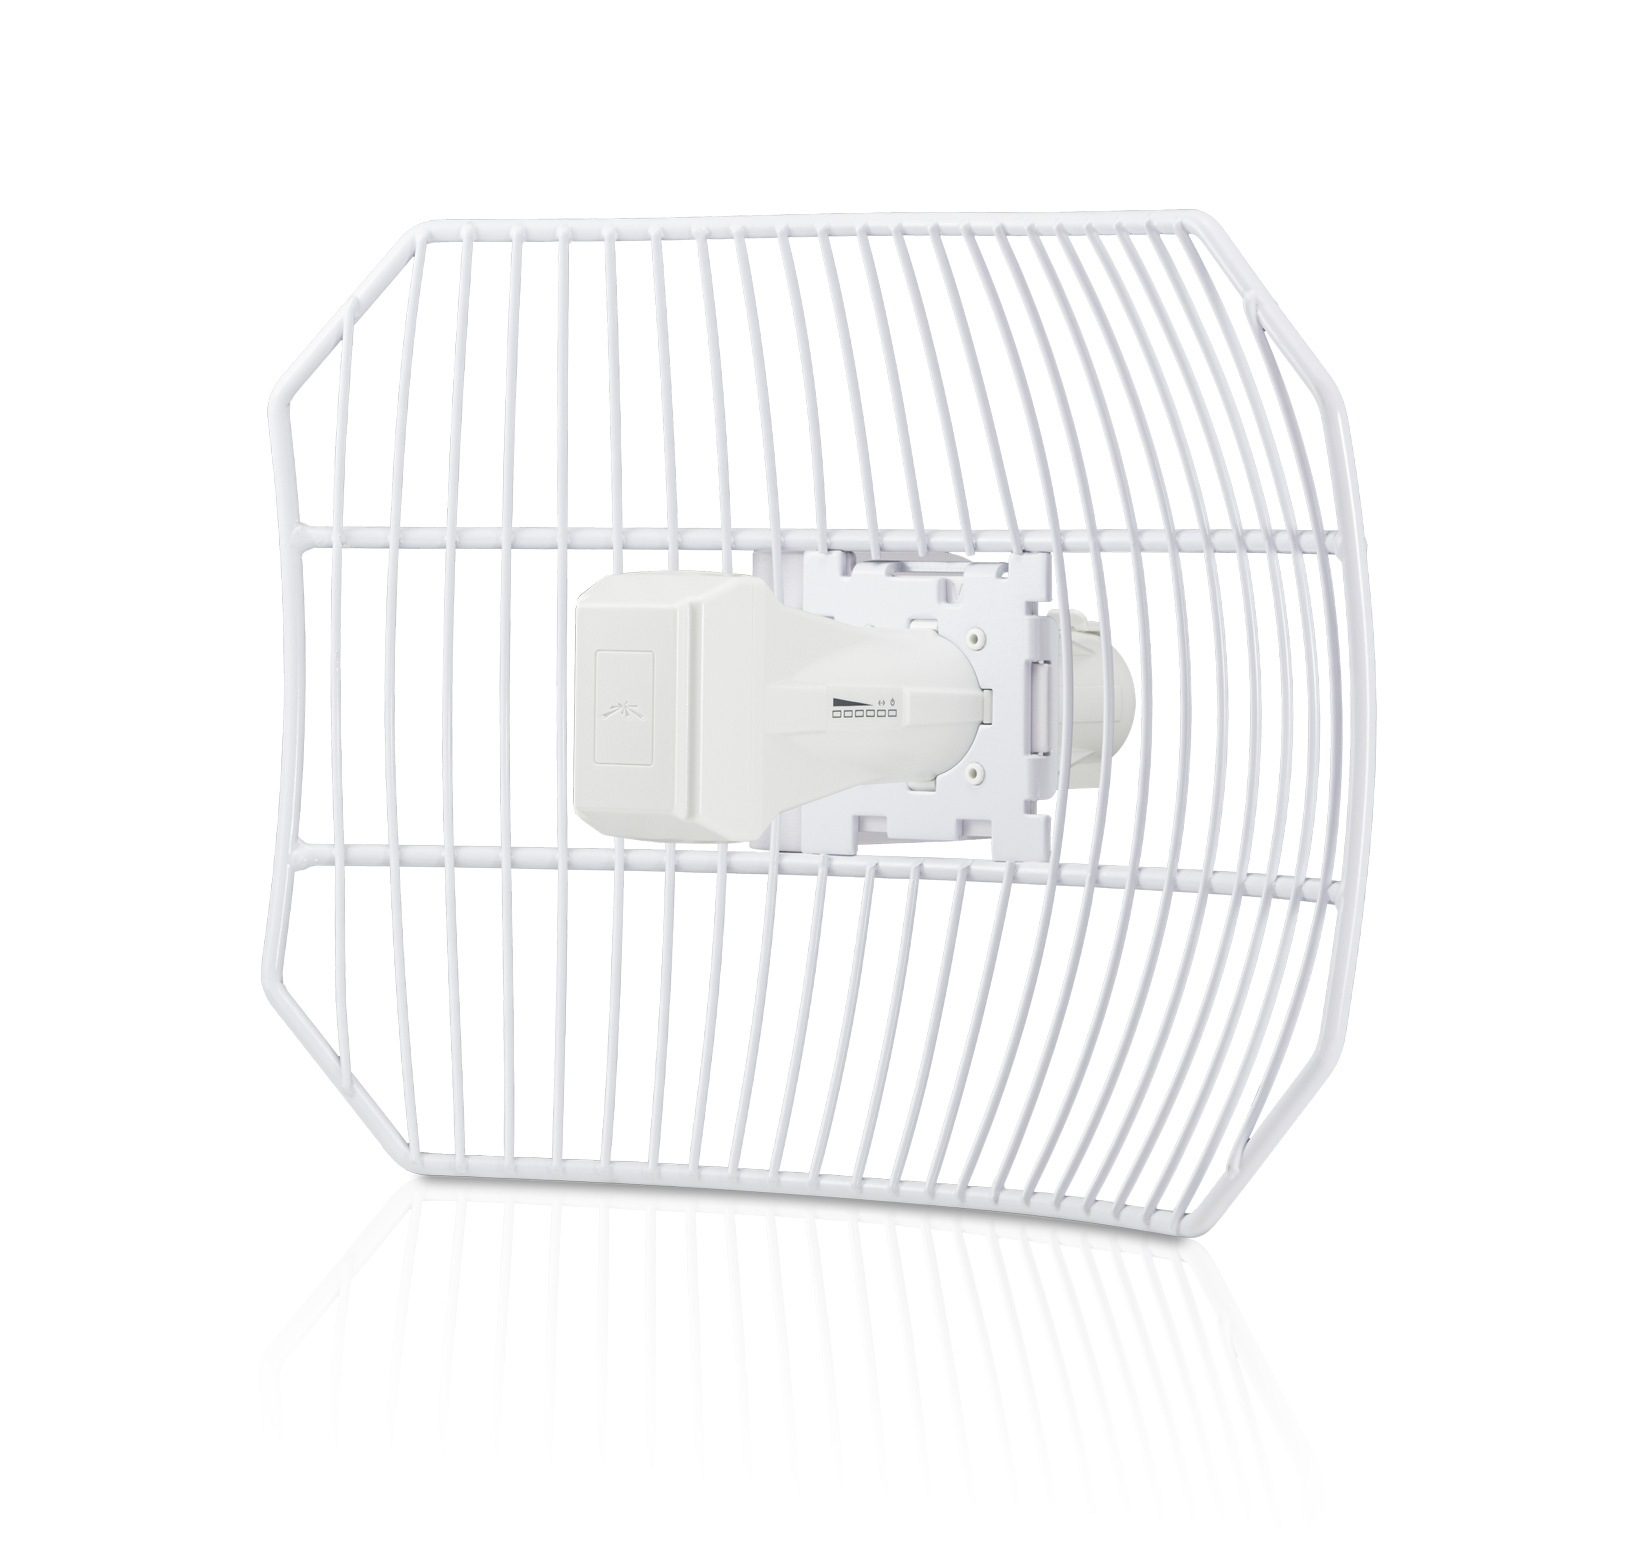 UBNT AirGrid M2 HP ant.16dBi outd.klient MIMO 2,4G